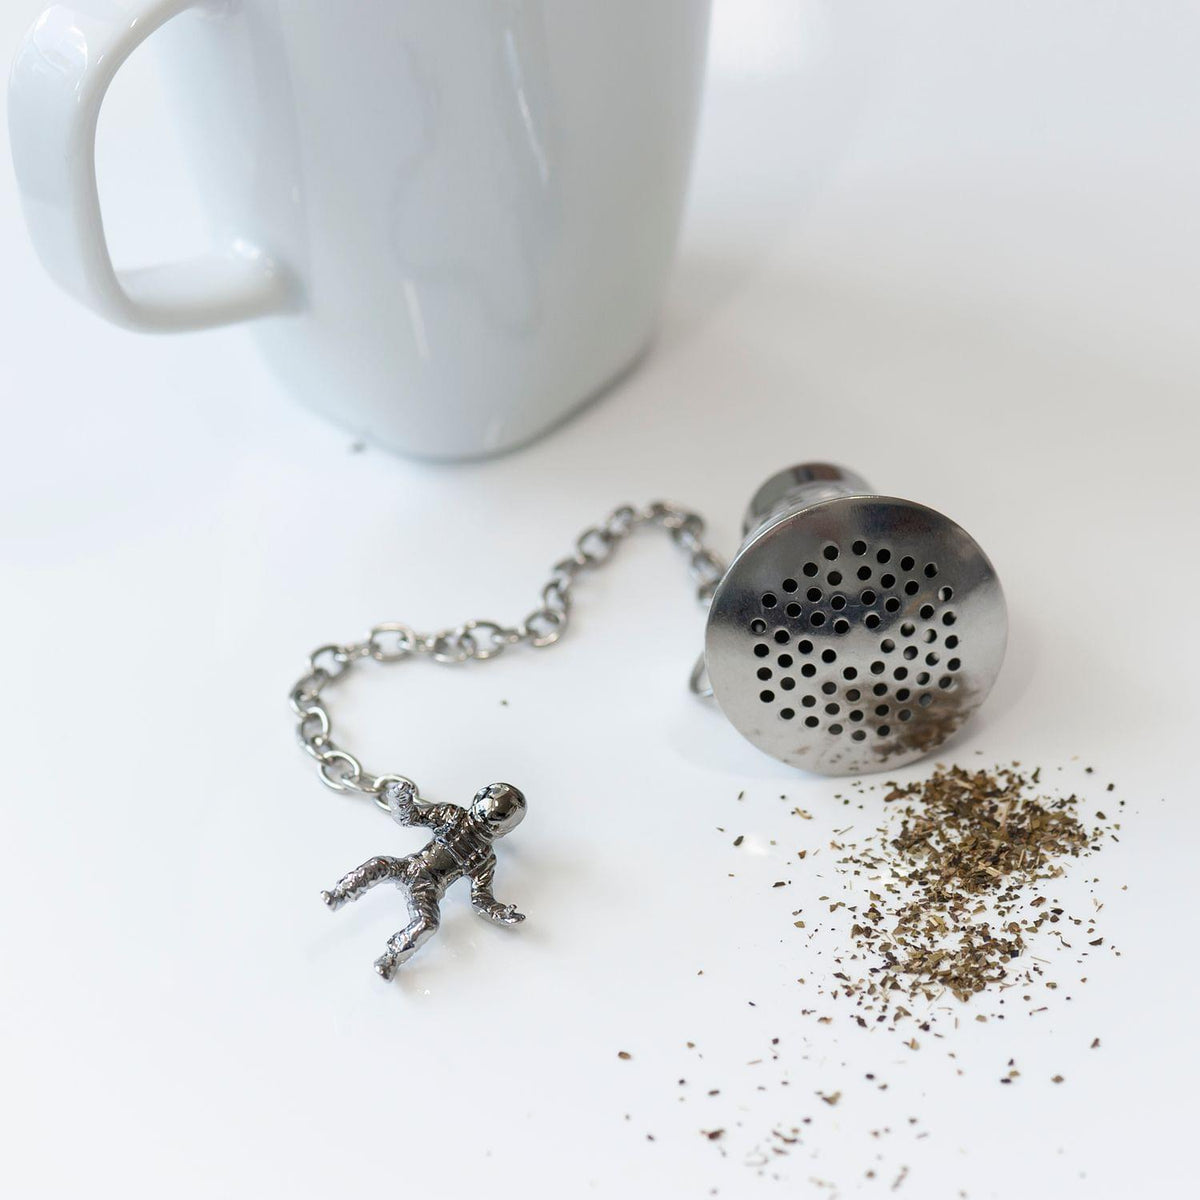 Space Capsule w Astronaut Stainless Steel Tea Infuser